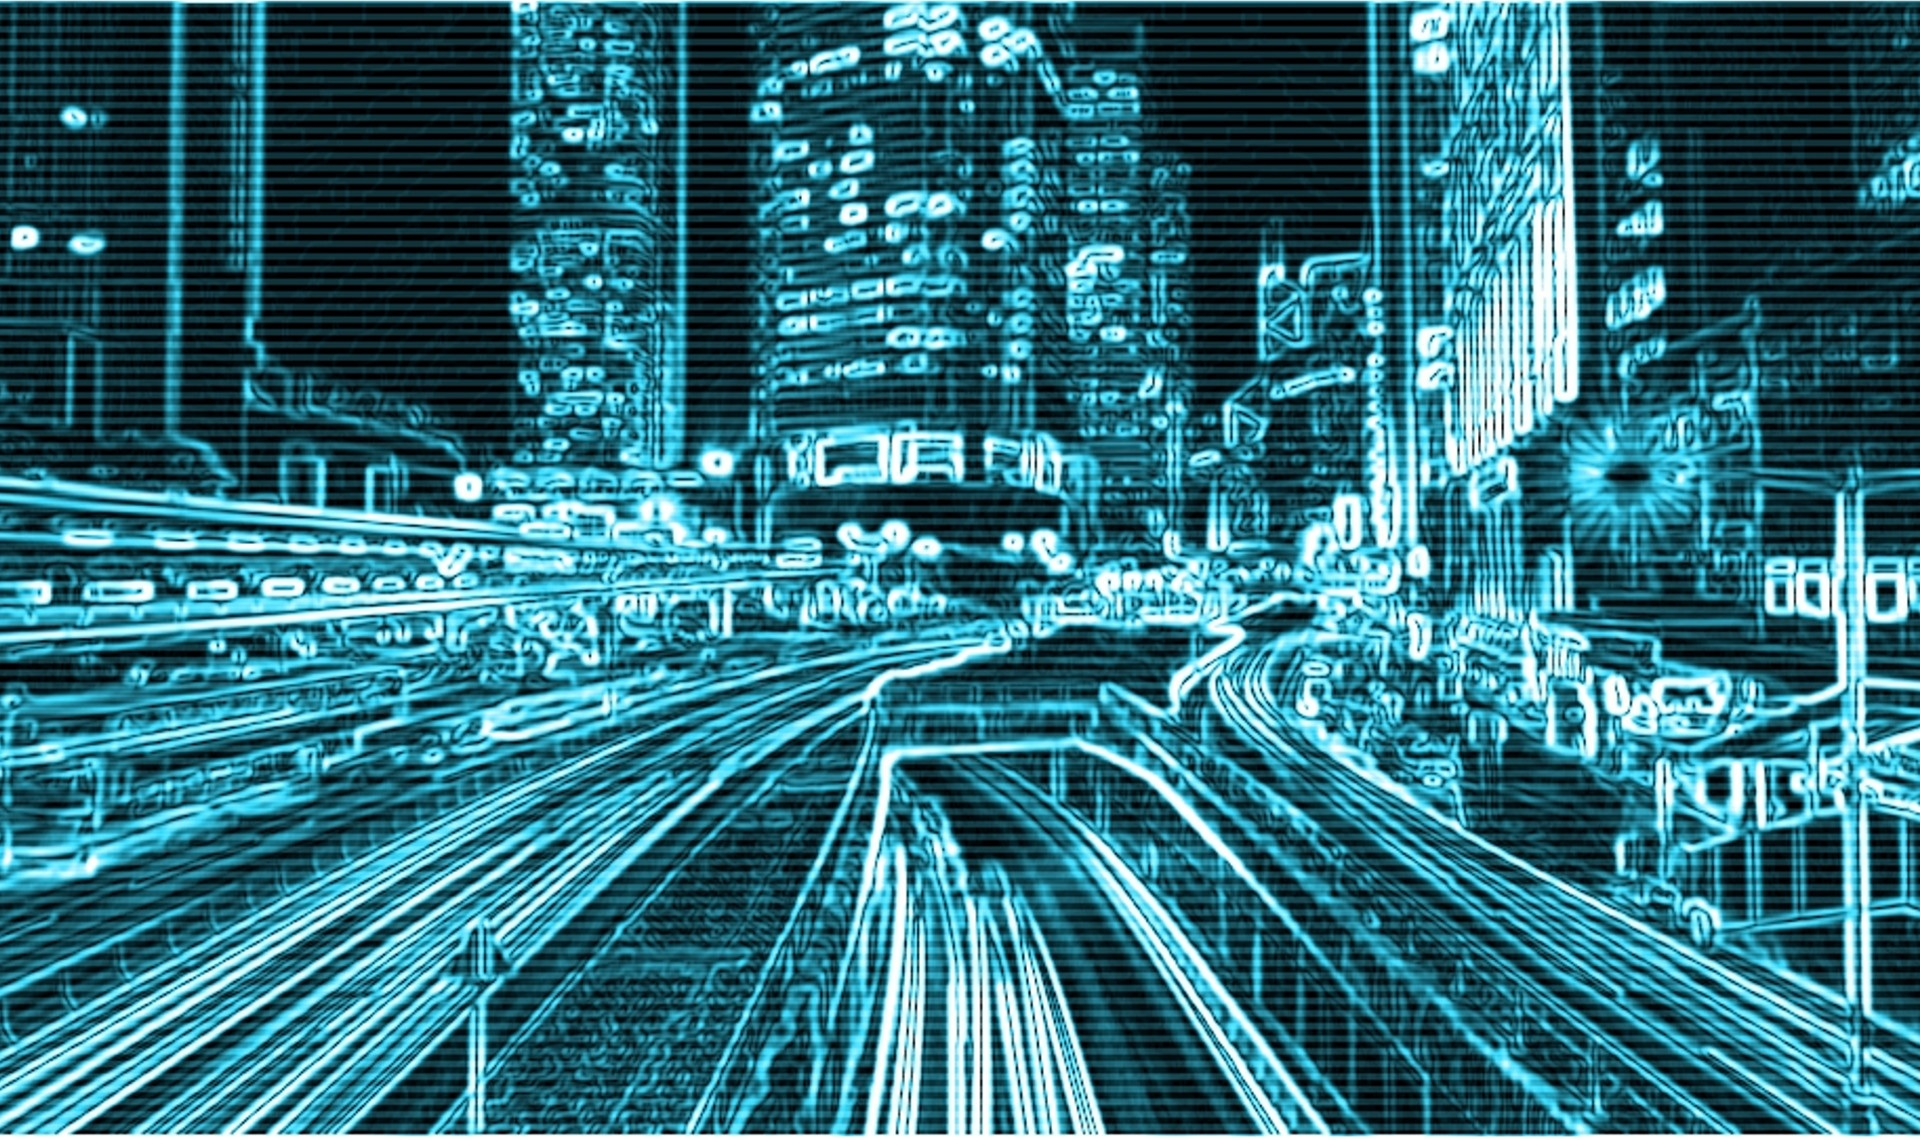 teal cyber image of a city